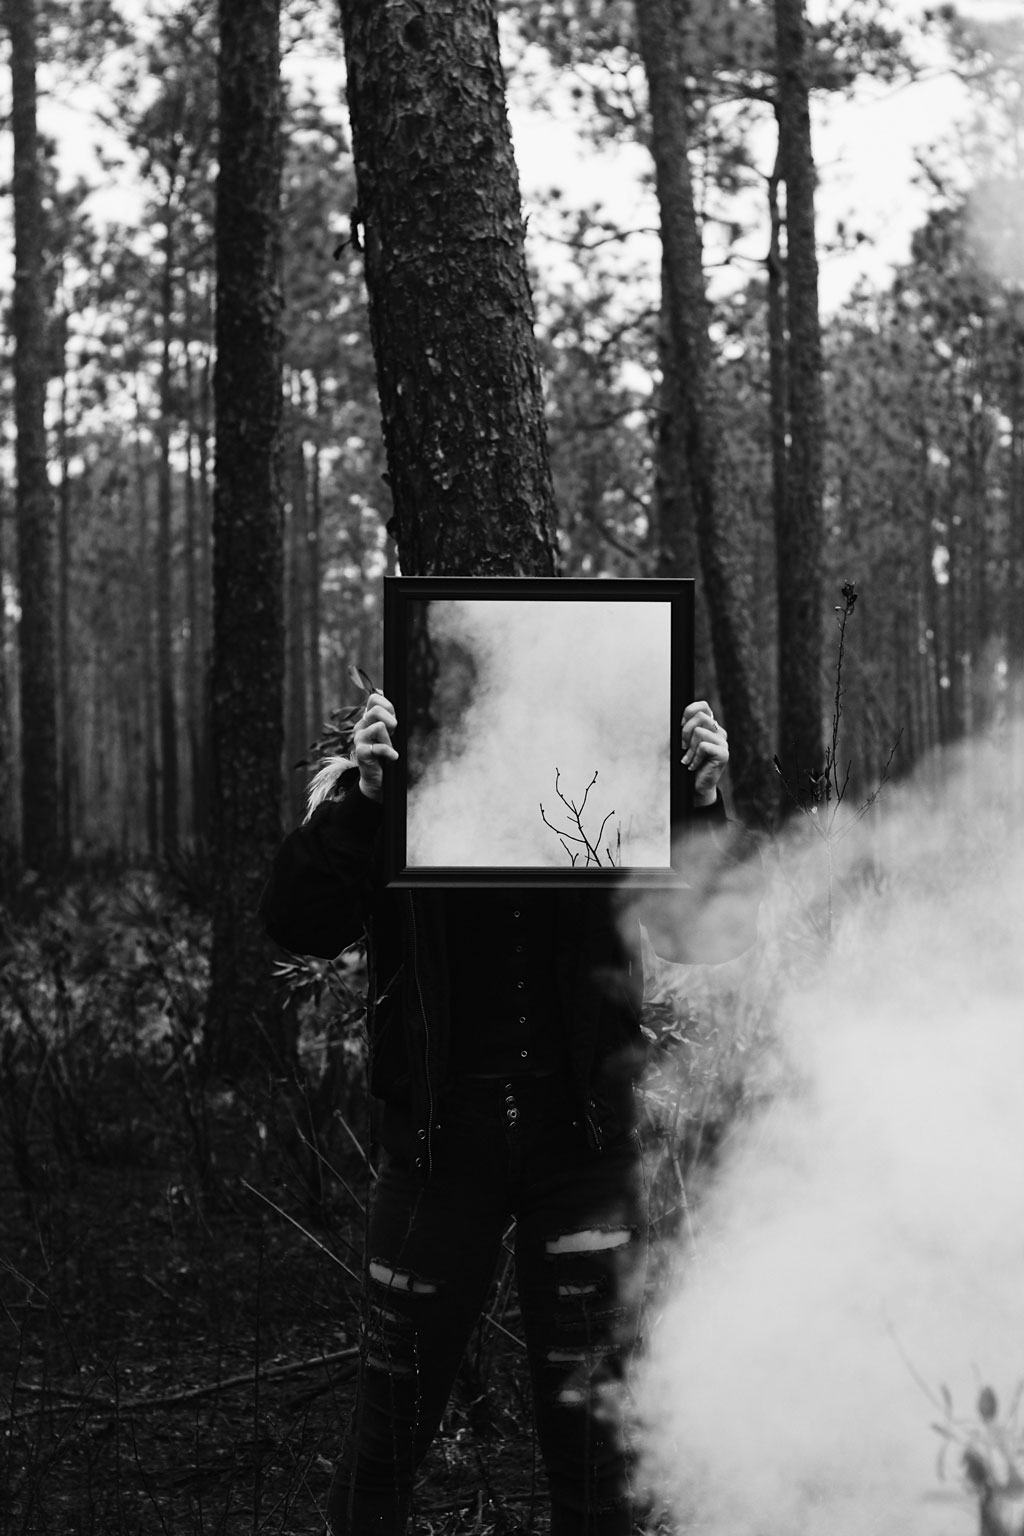 BW Person holding a mirror in the woods